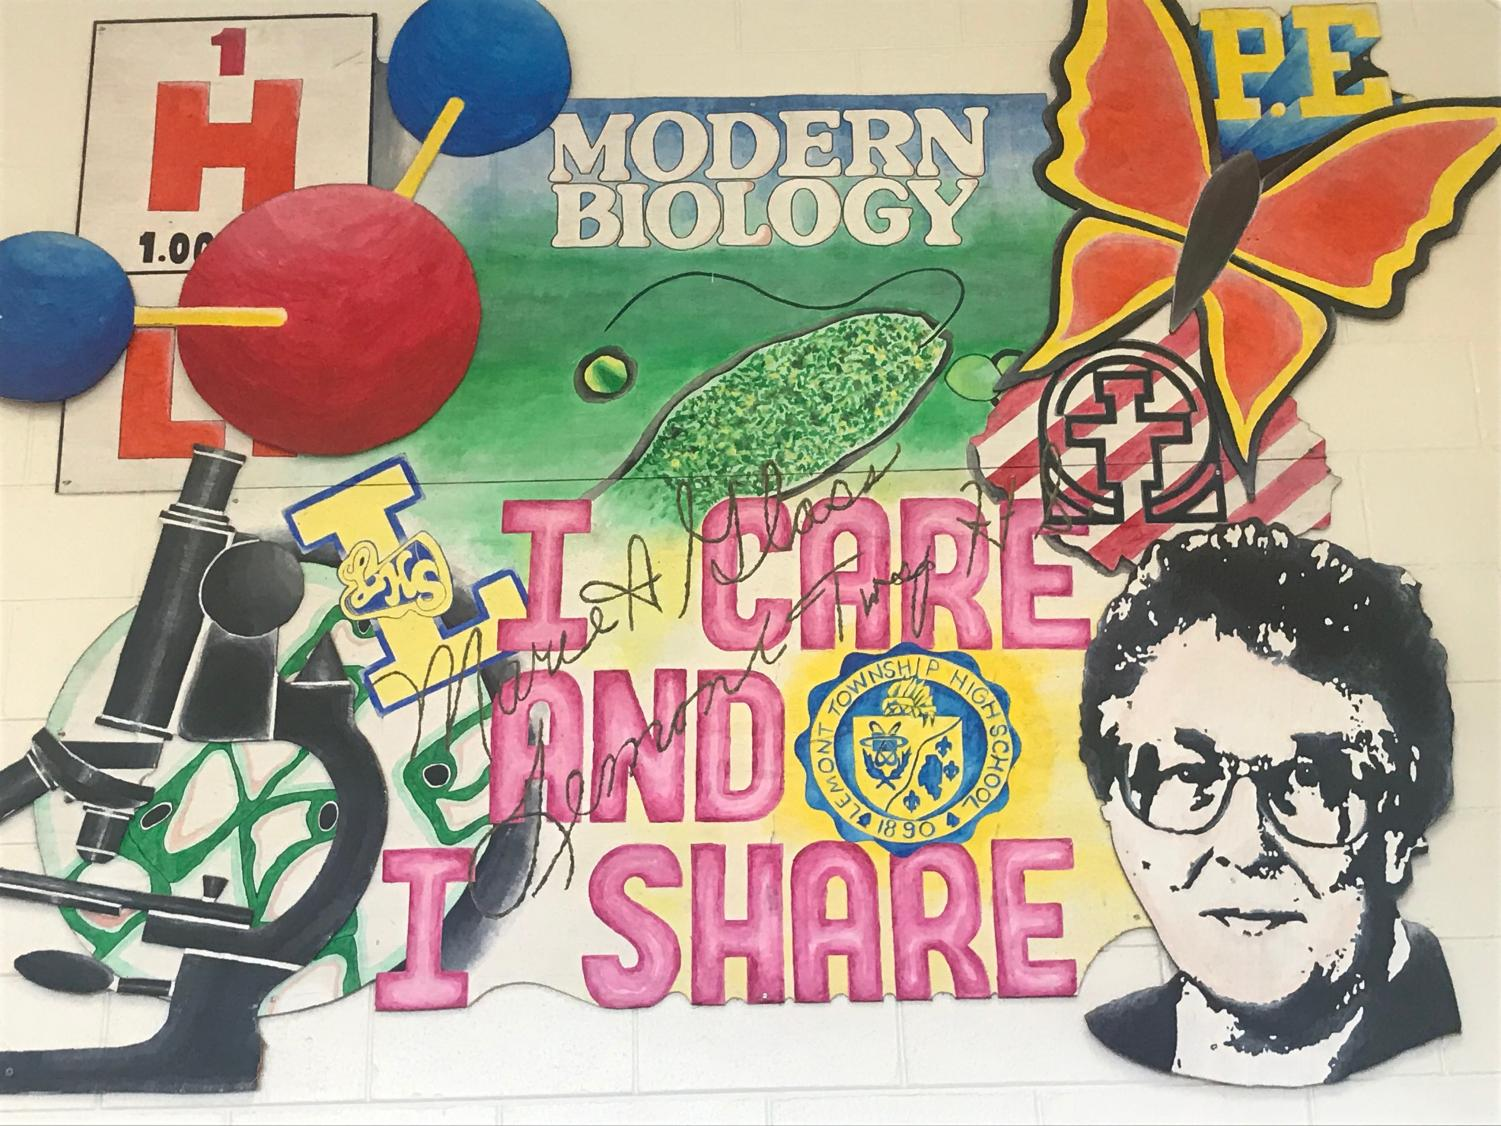 The large multi-colored mural attempts to capture Glass' dedication and enthusiasm for teaching. Her legacy continue to linger through generations of LHS graduates 28 years after she died of cancer.